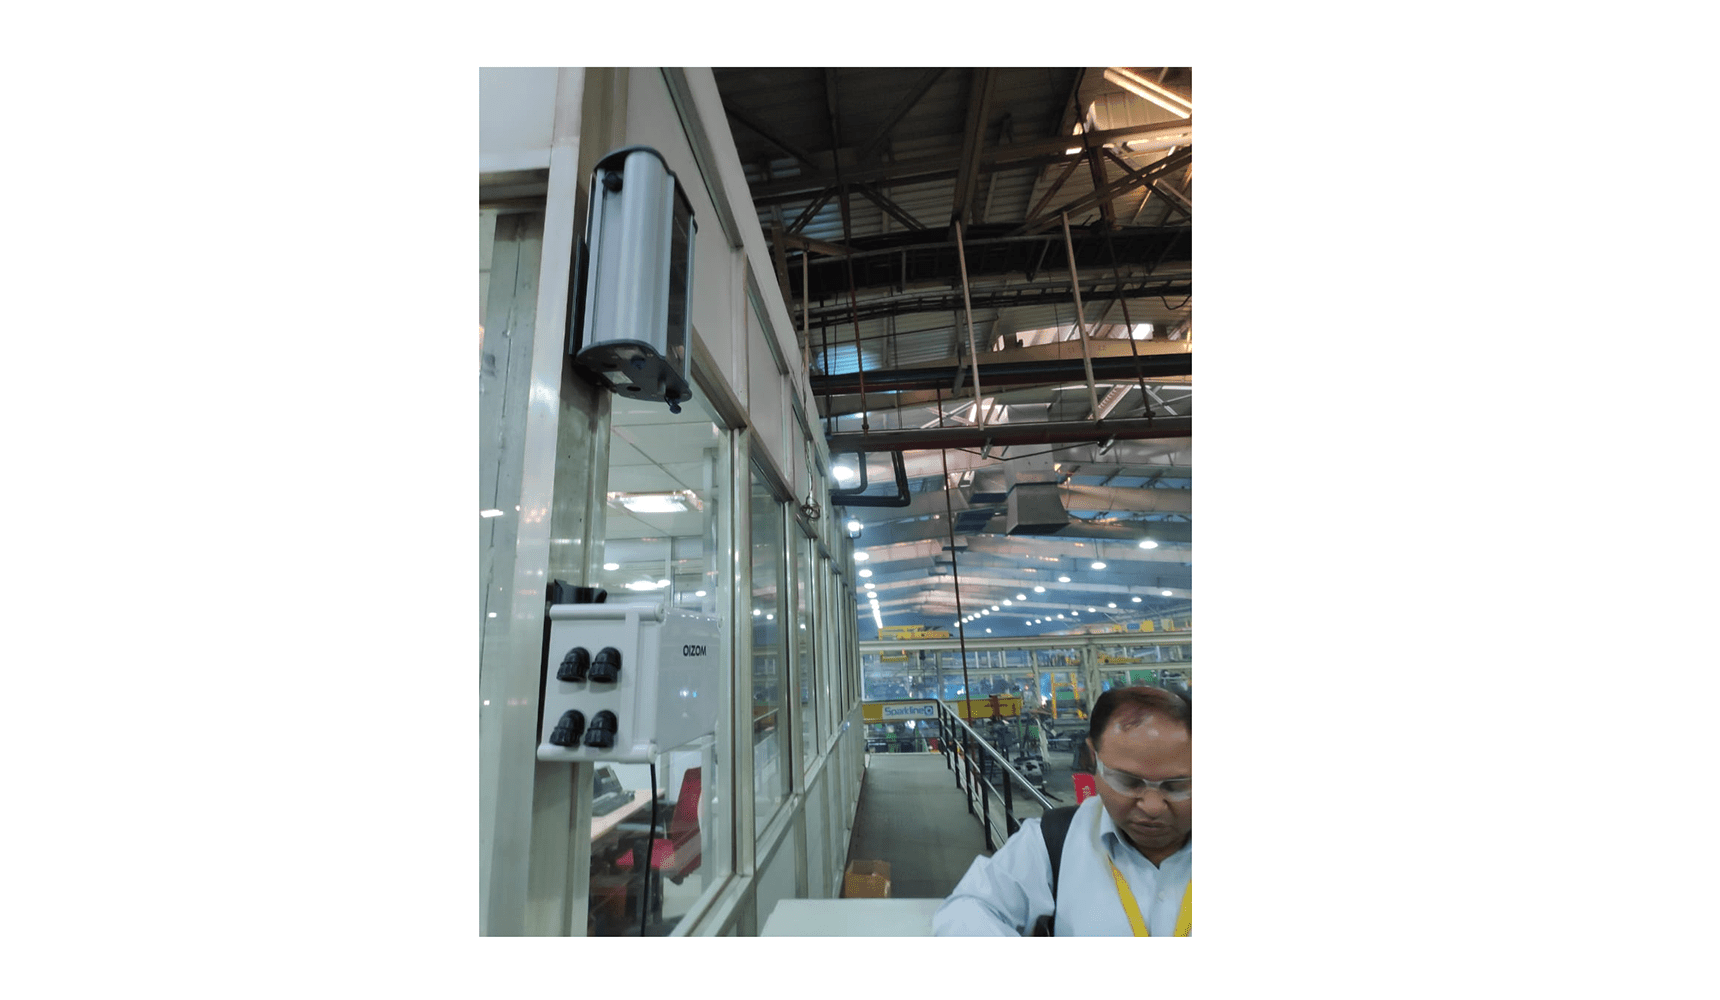 Dustroid Particulate Sensor data helps automate the Air purifier inside JCB plant as the dust level breaches the threshold.